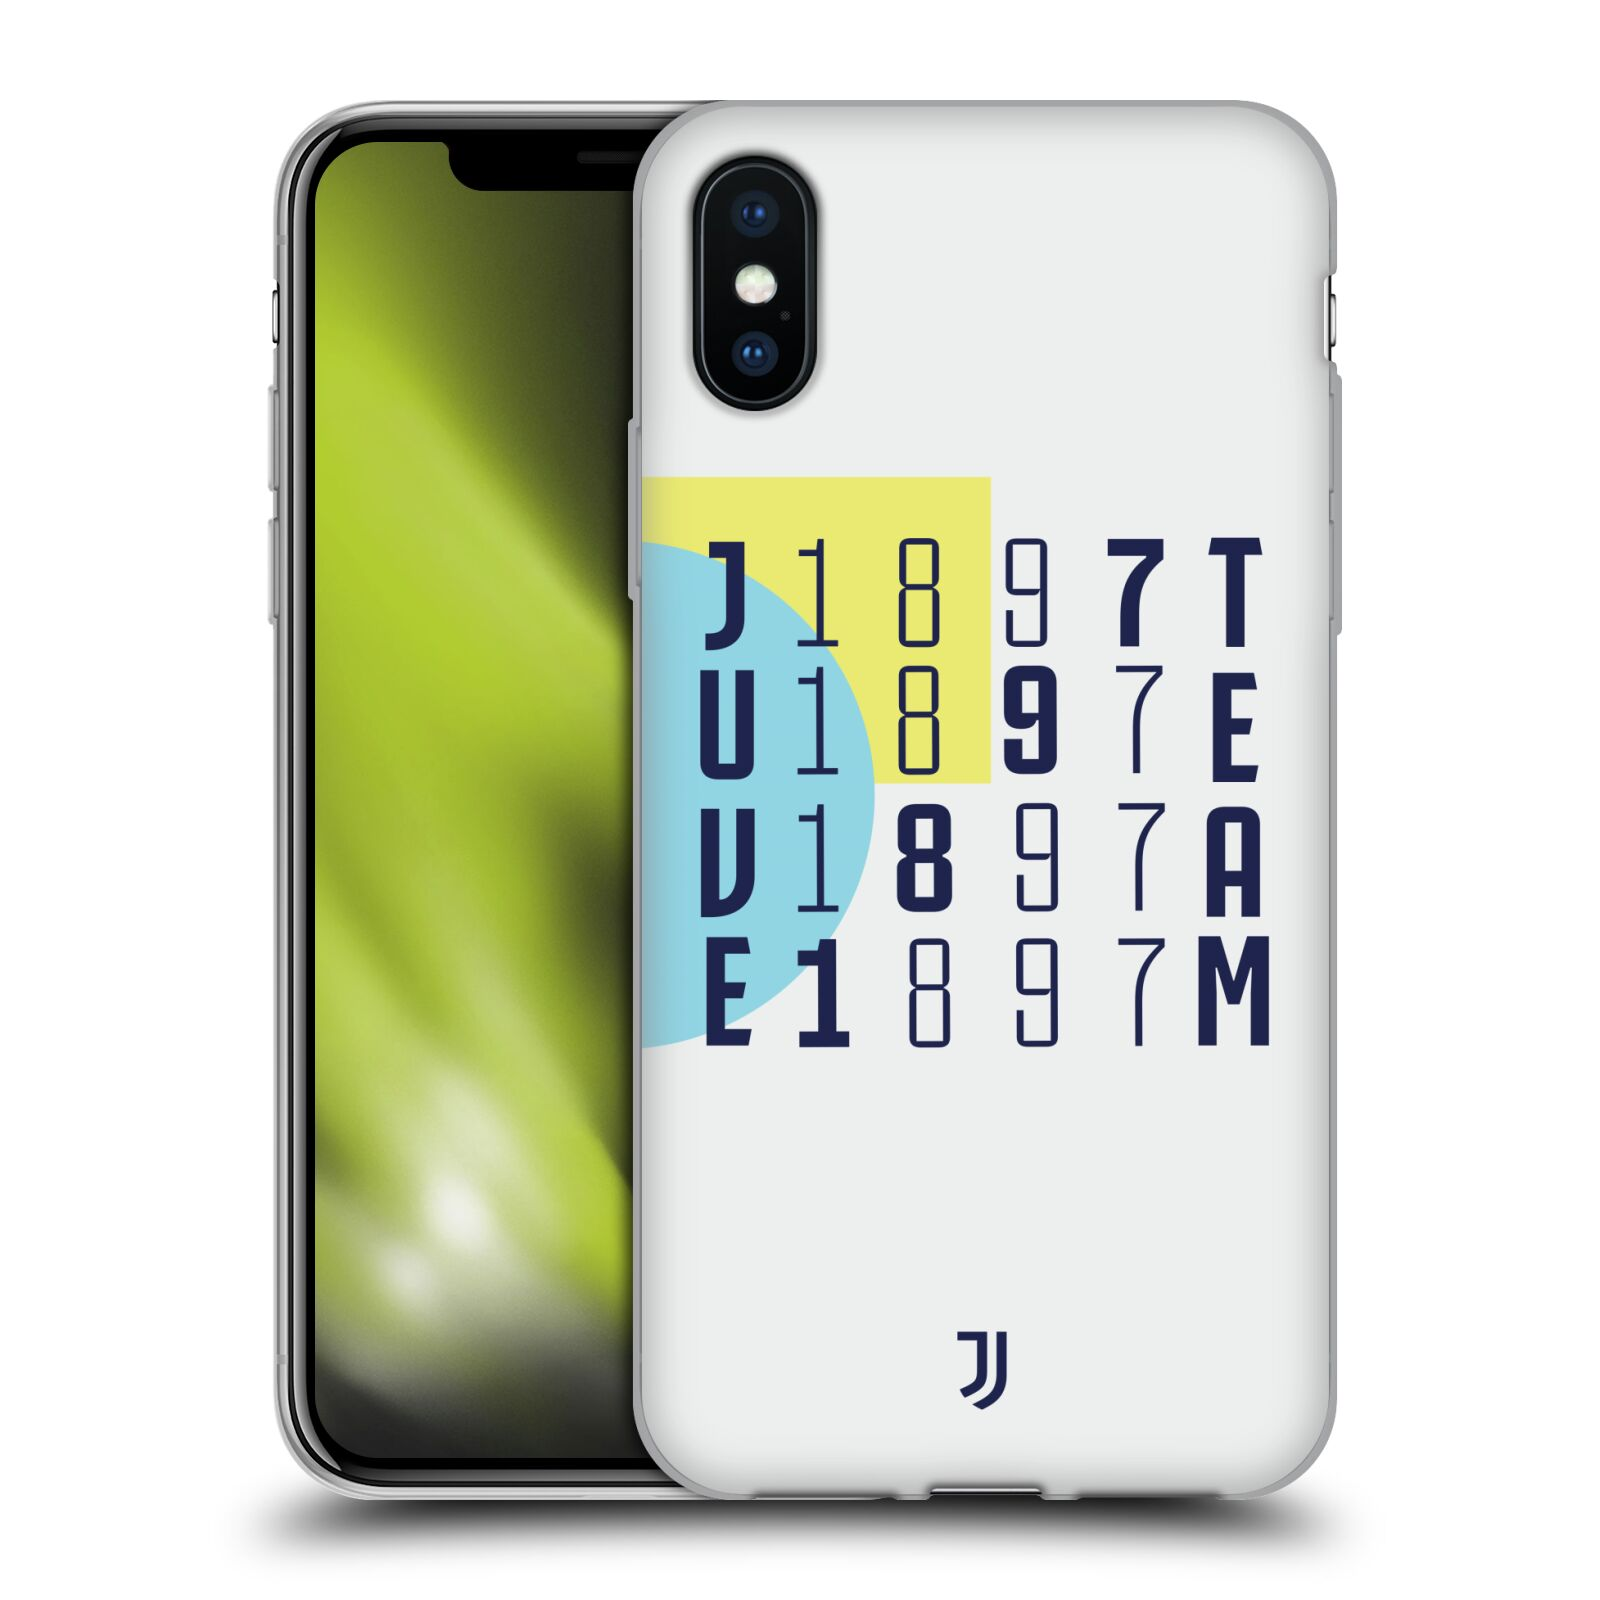 JUVENTUS-FC-2018-19-COLOUR-BLOCKING-ETUI-COQUE-EN-GEL-POUR-APPLE-iPHONE-PHONES